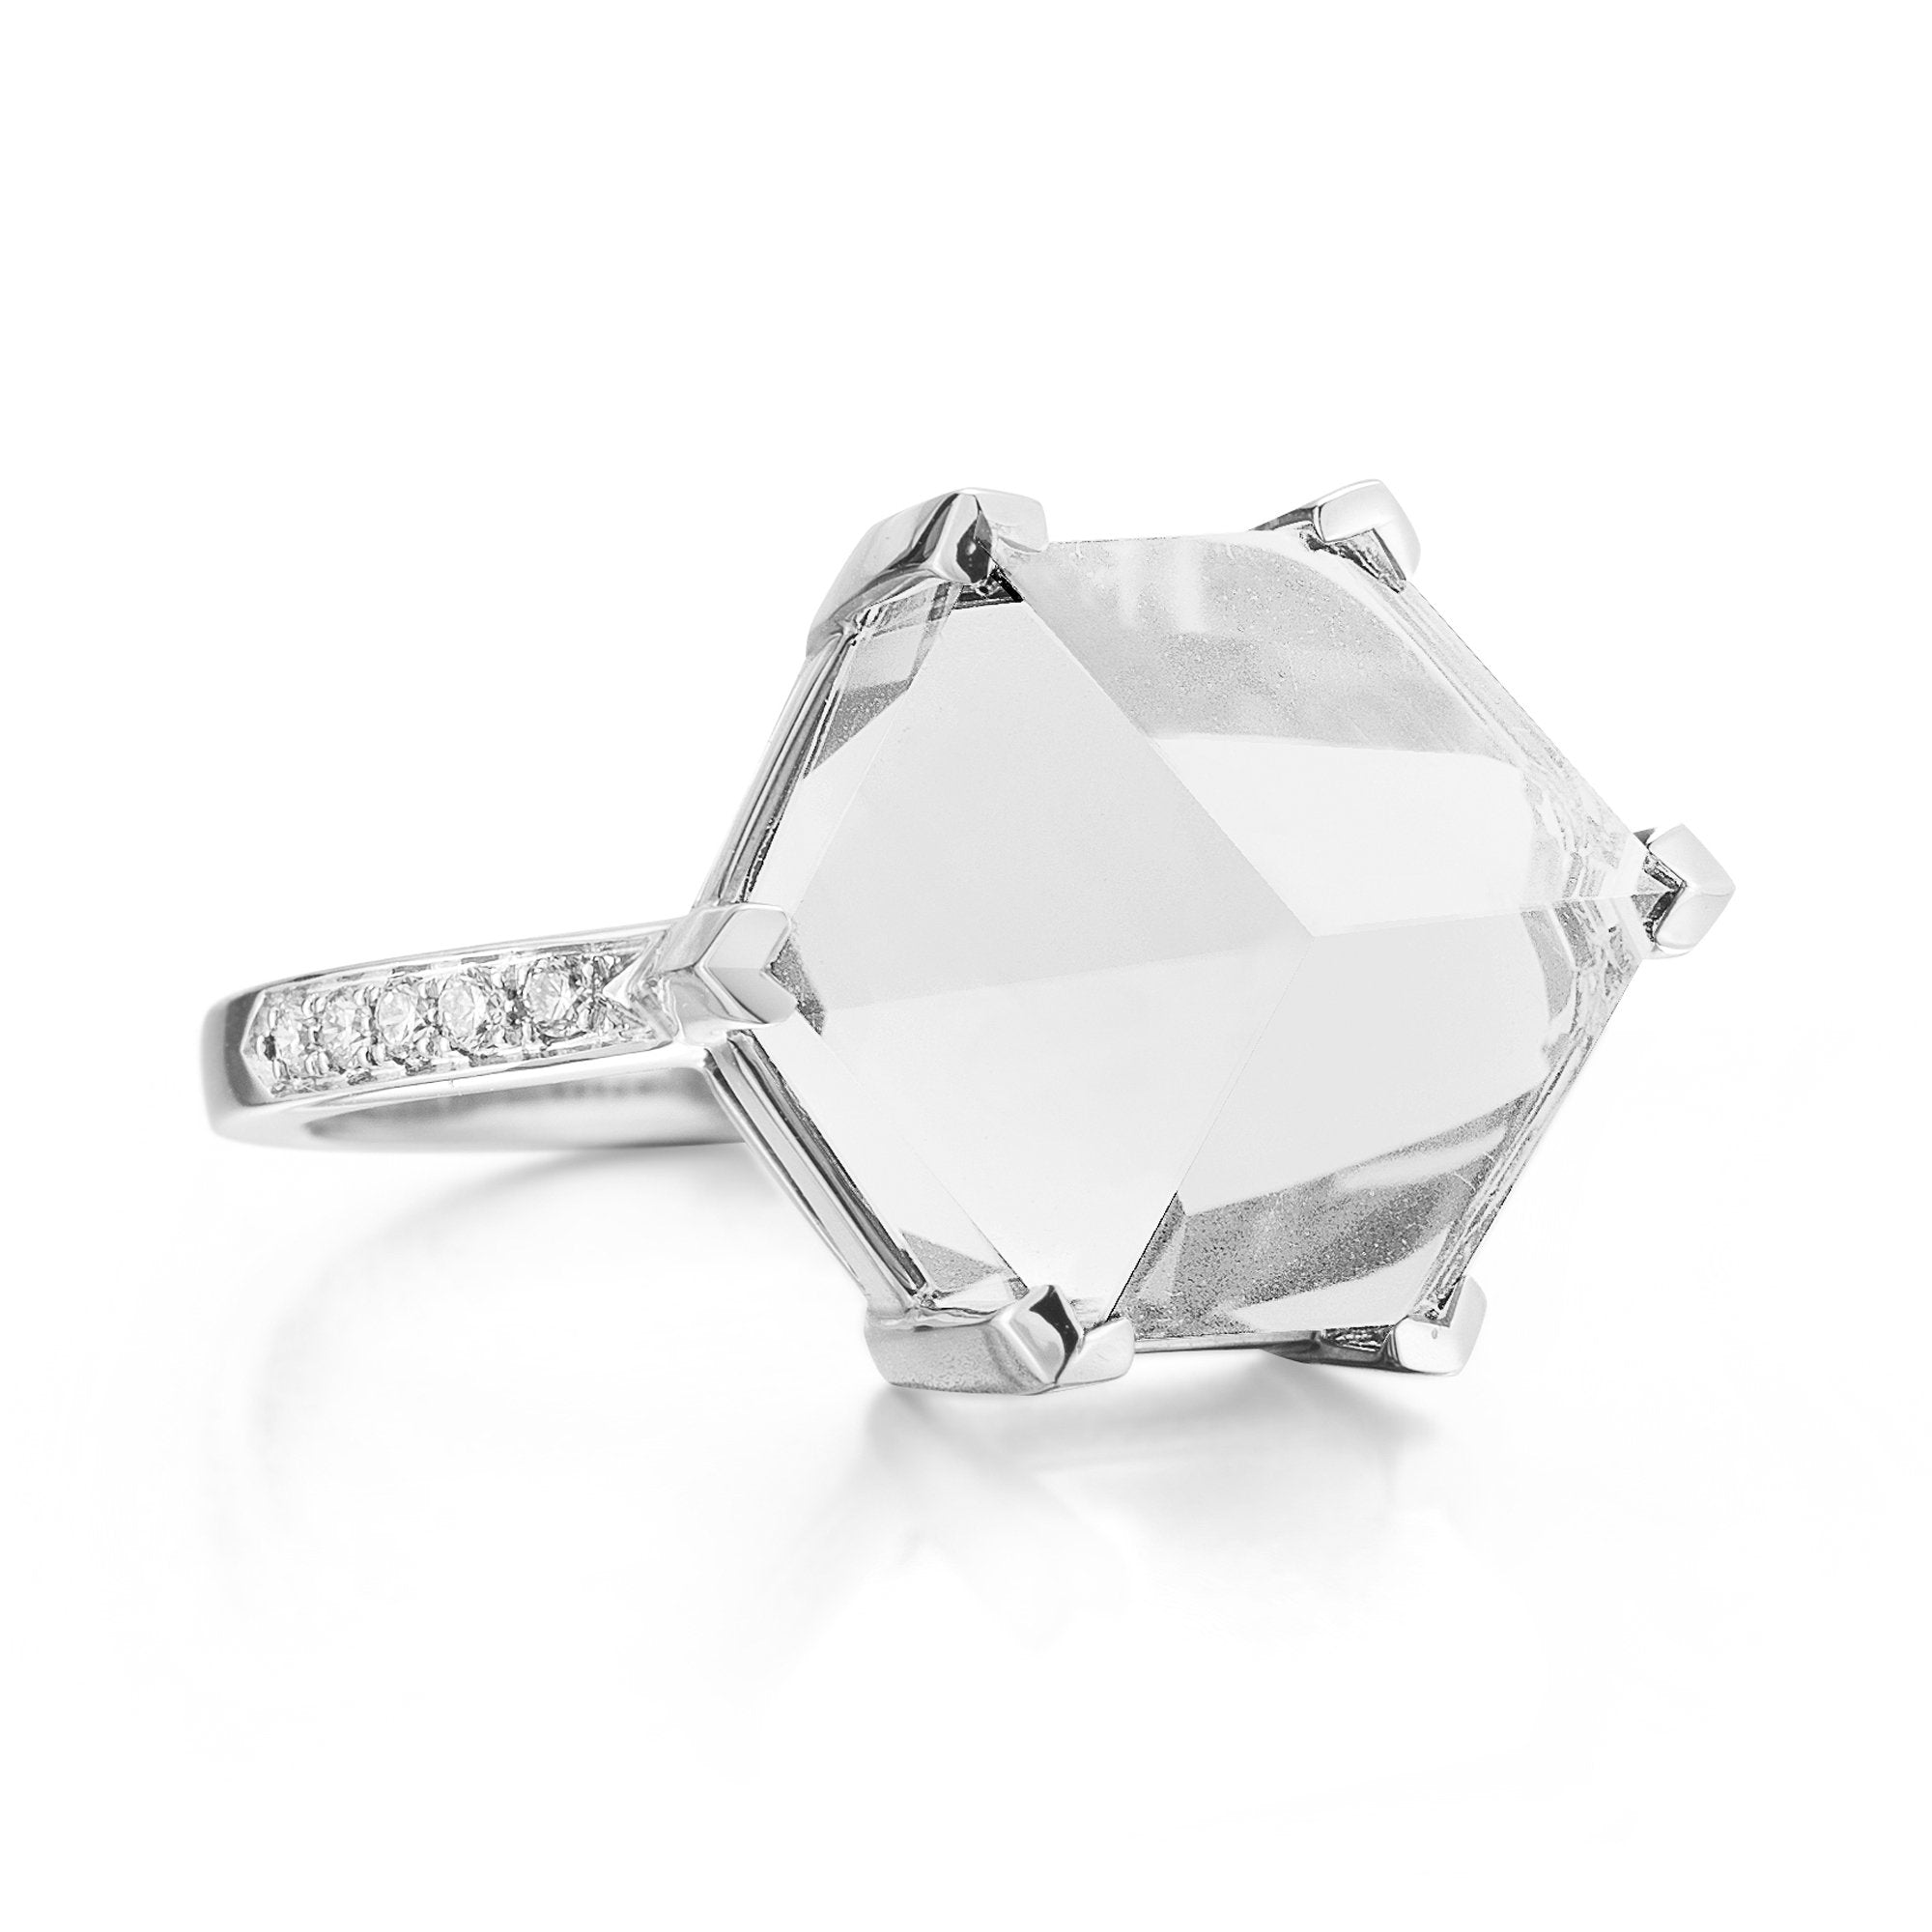 White Topaz 'Brillante® Valentina' Ring, Medium - Paolo Costagli - 1